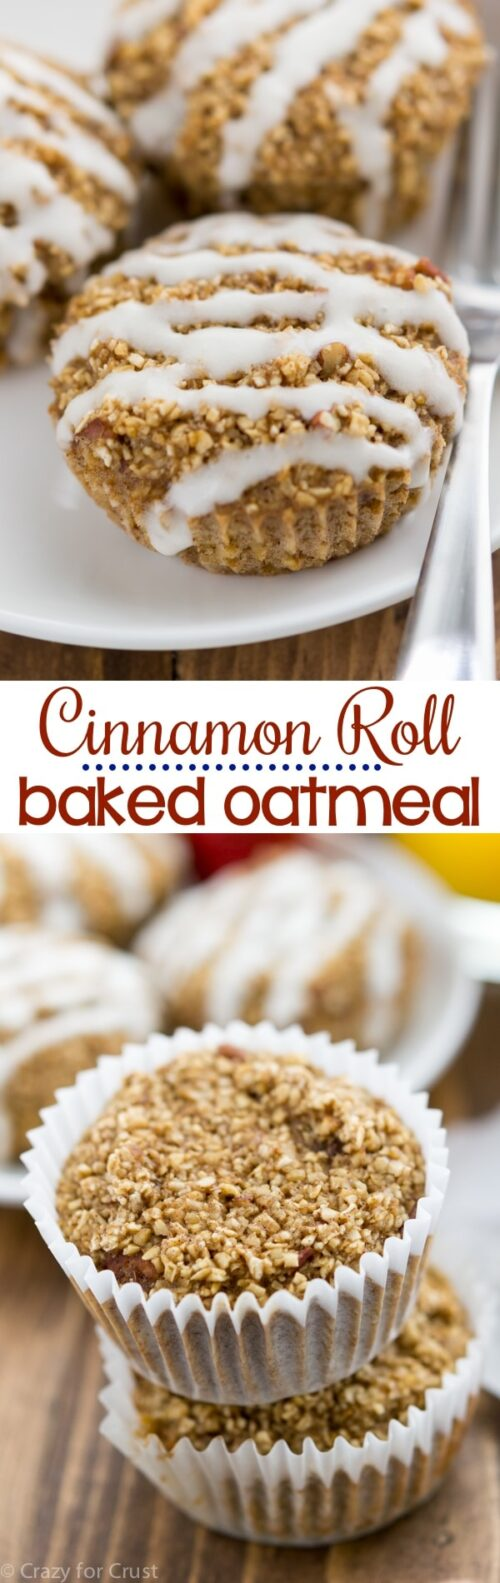 collage baked oatmeal muffins